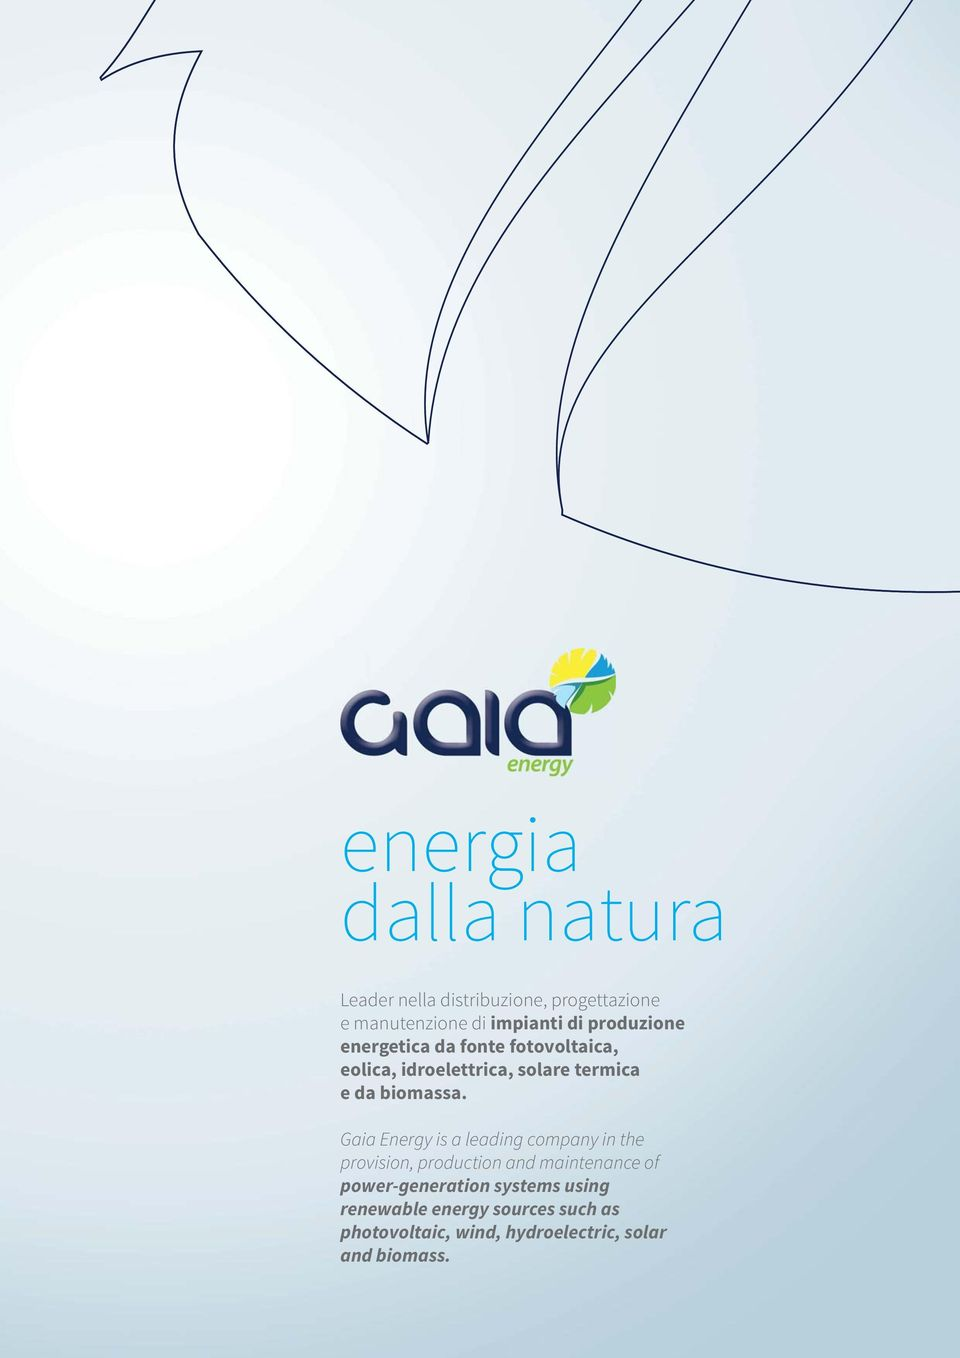 Gaia Energy is a leading company in the provision, production and maintenance of power-generation